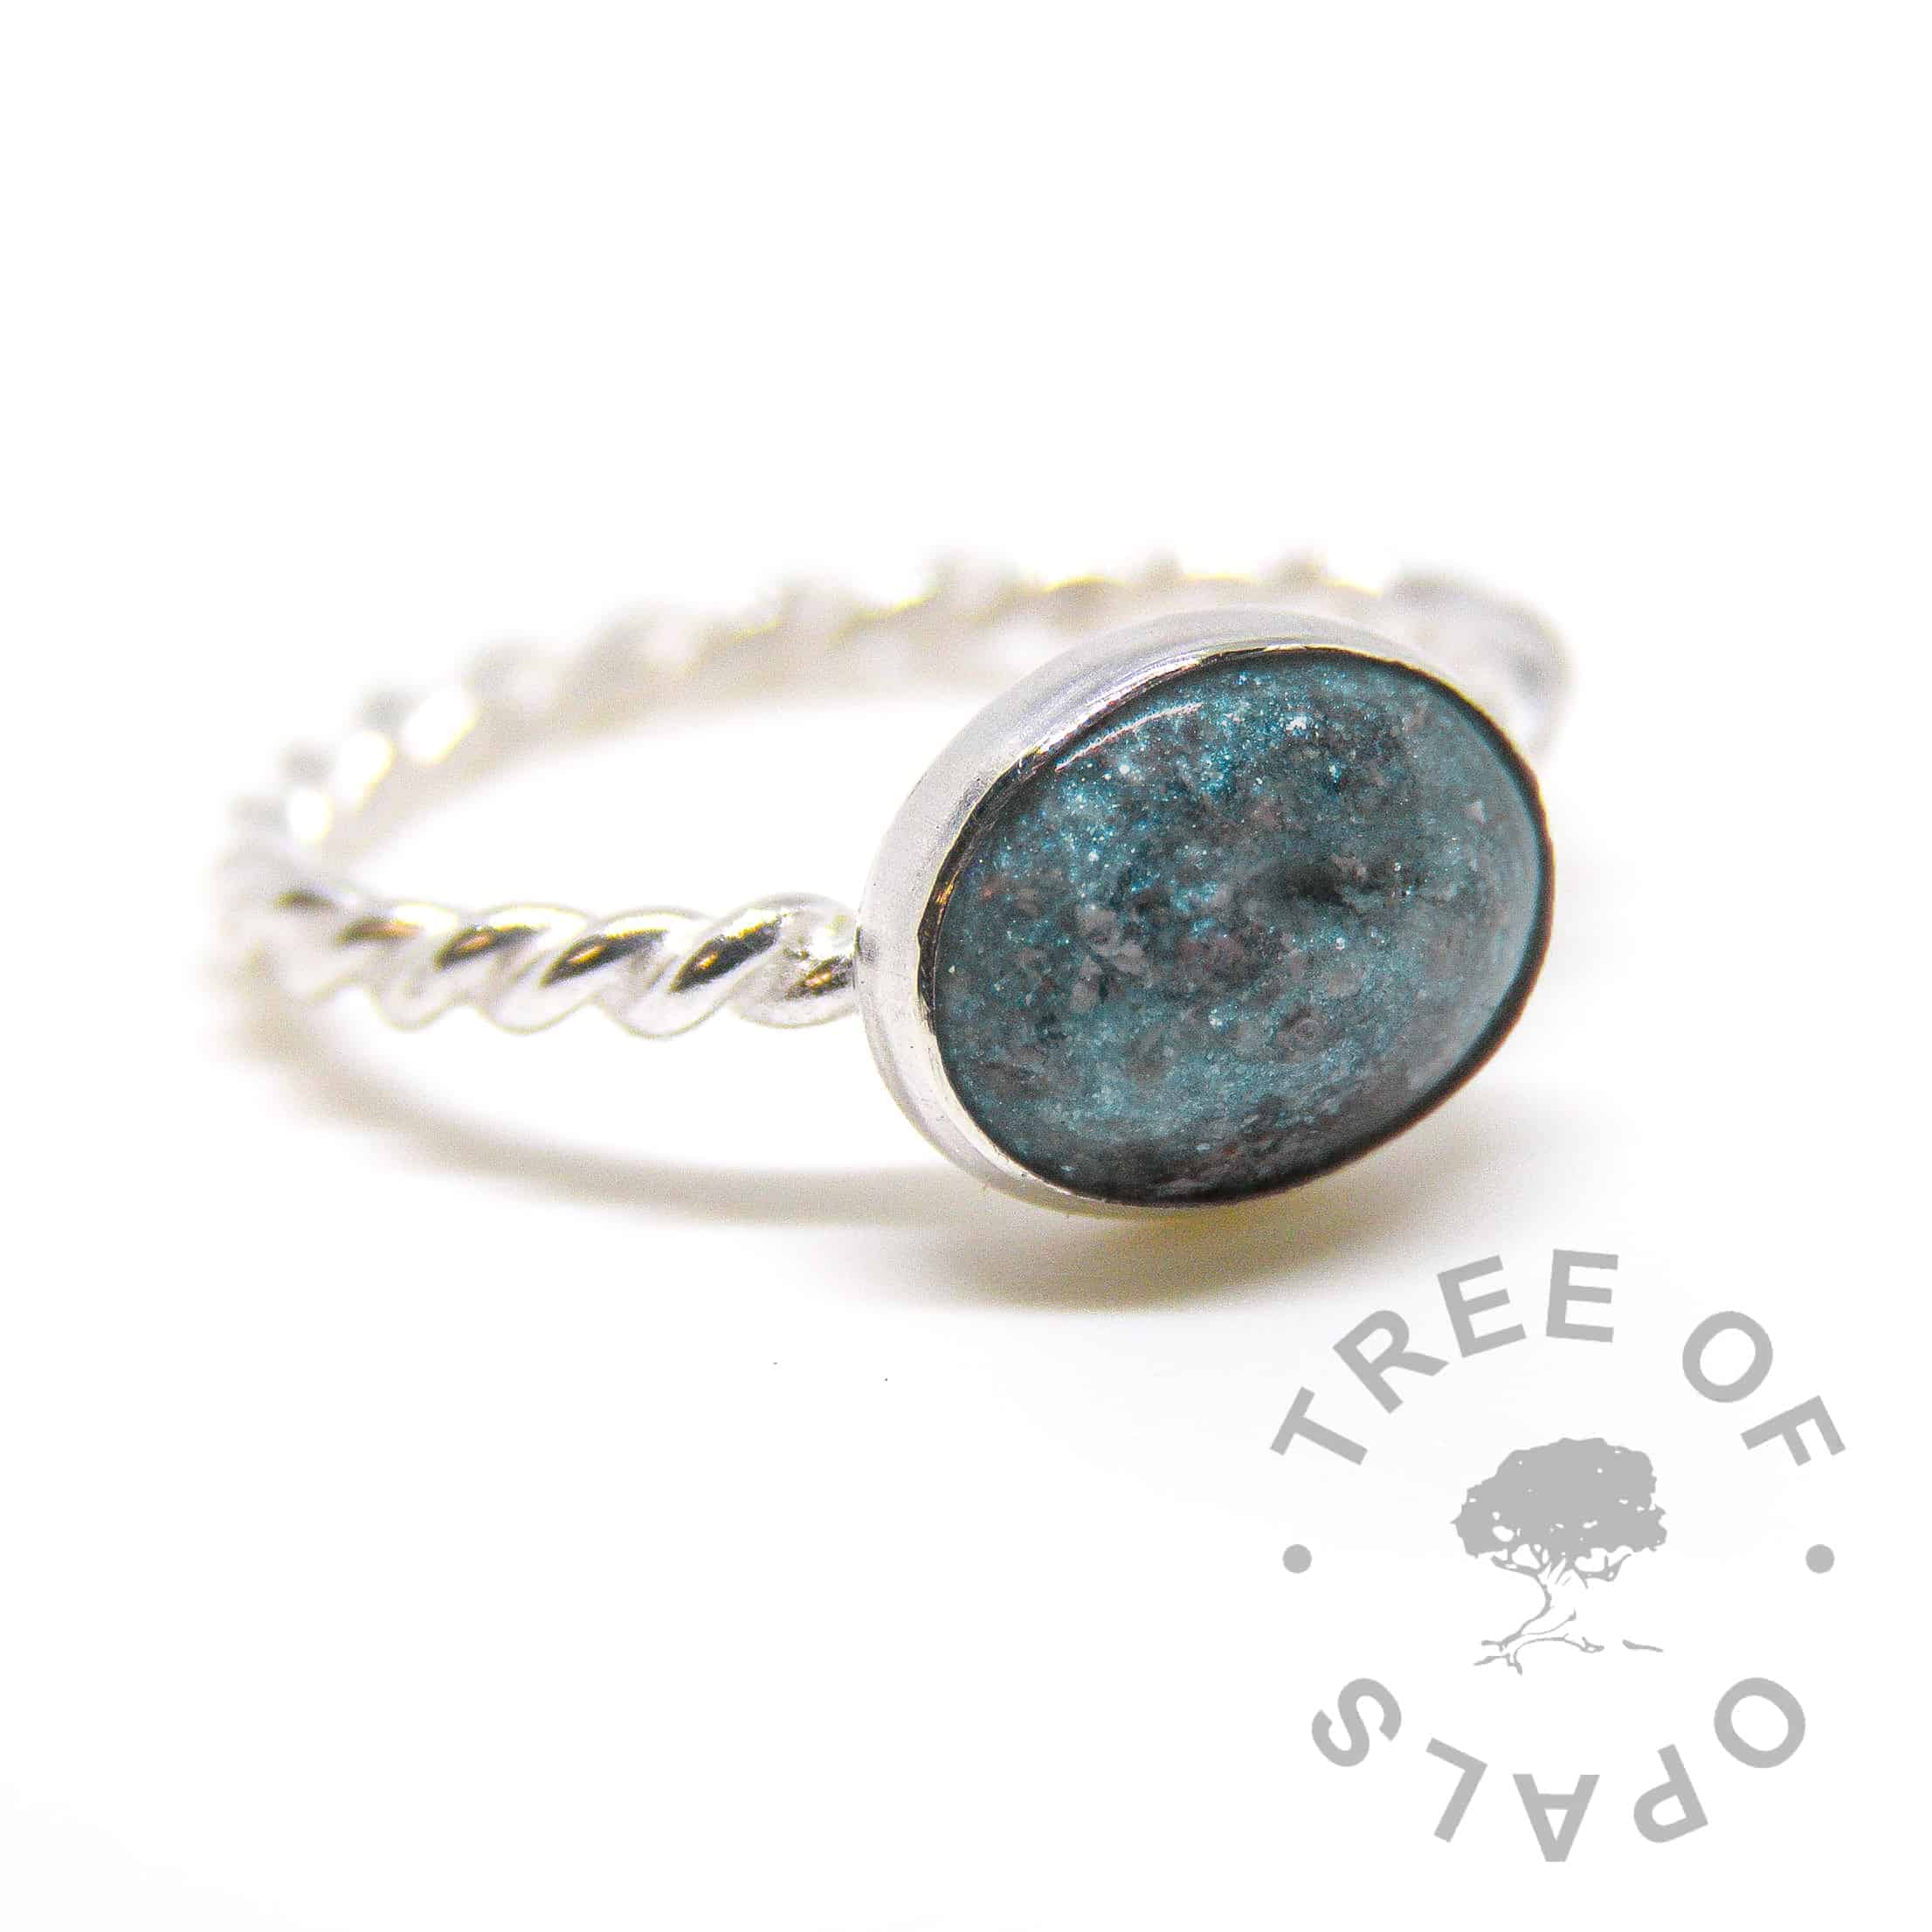 Cremation ash ring on twisted band with Aegean blue shimmer and cerulean blue glitter pro bono ashes memorial keepsake